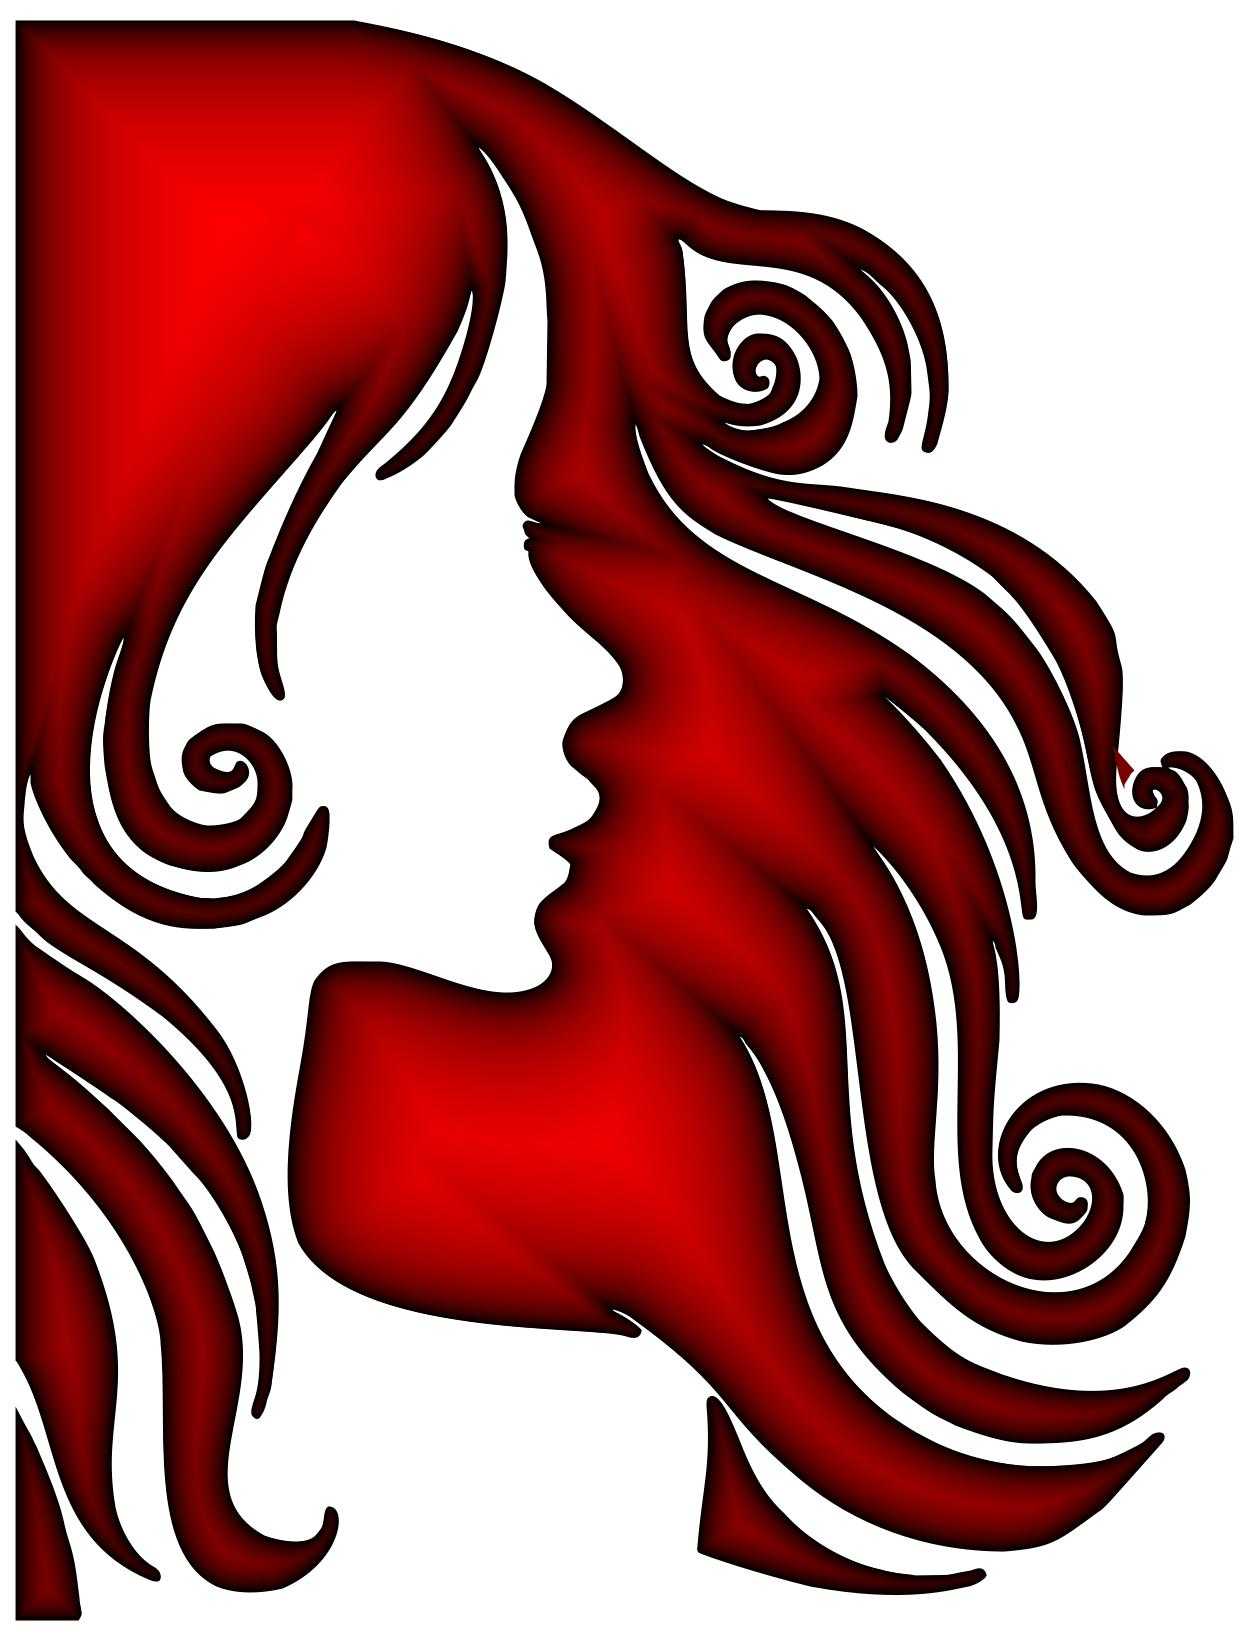 1249x1641 Female Hair Profile Silhouette Crimson Clipart